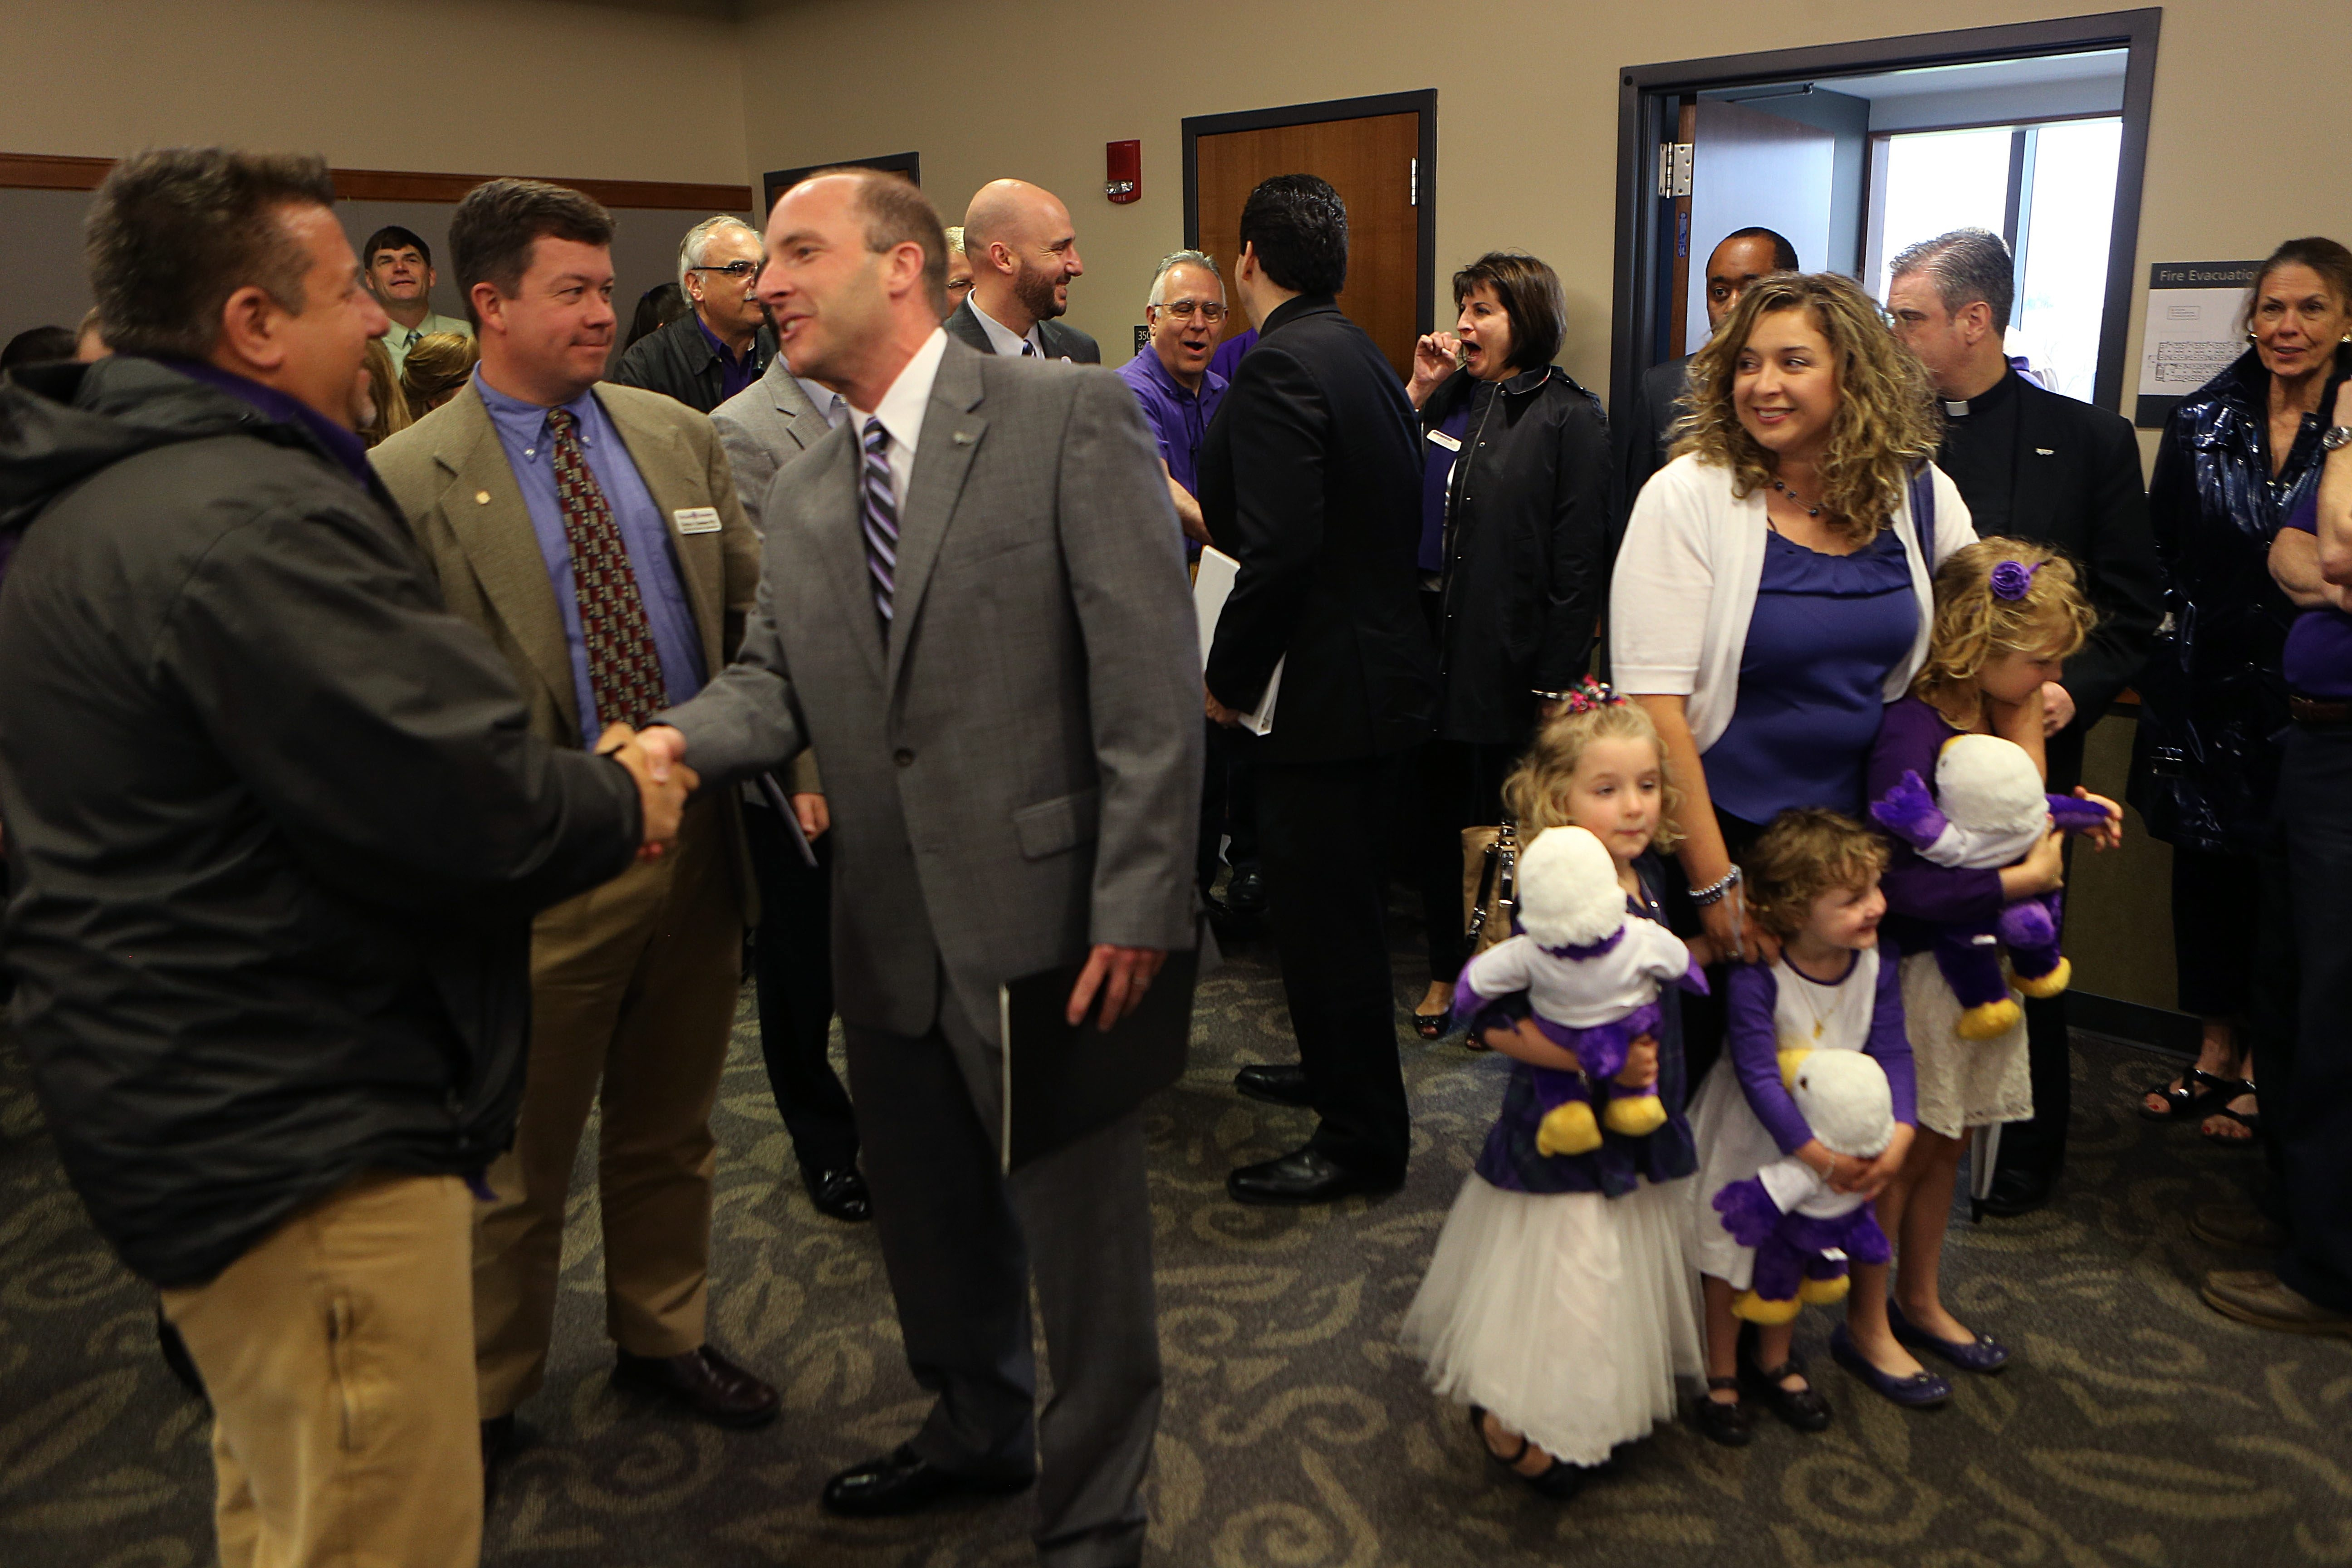 New athletics director Simon Gray, third from left, greets attendees at a gathering in Bisgrove Hall on the Niagara University campus in Lewiston, as his wife, Anne Christine, manages three daughters, Emilie, 7, Elisabeth, 5, and Caroline, 2, all dressed in school purple.